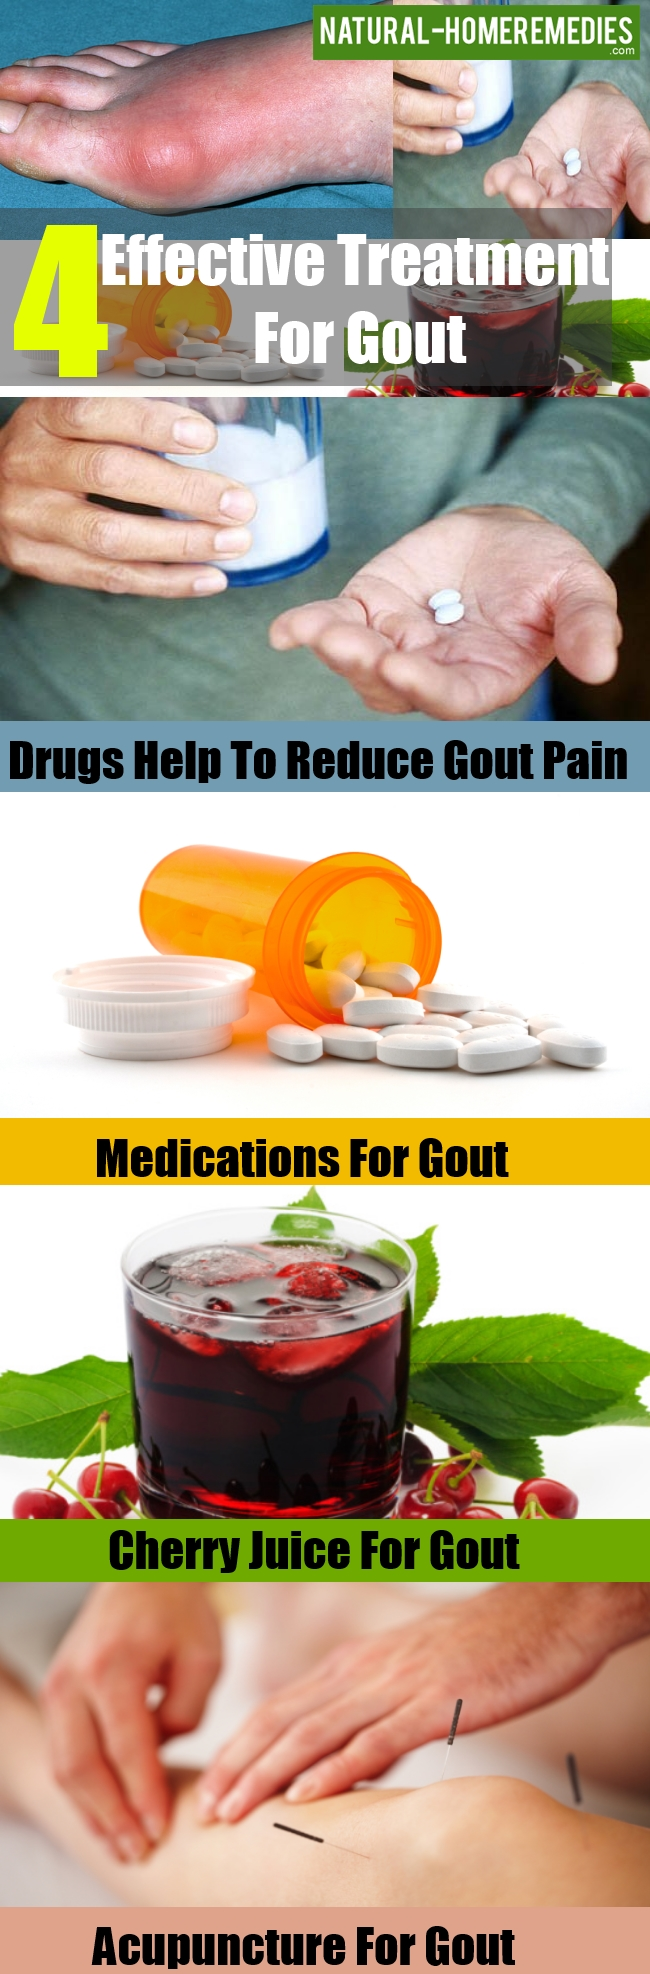 home remedies for preventing and relieving gout herbal treatment for gout pain foods to prevent gout flare ups